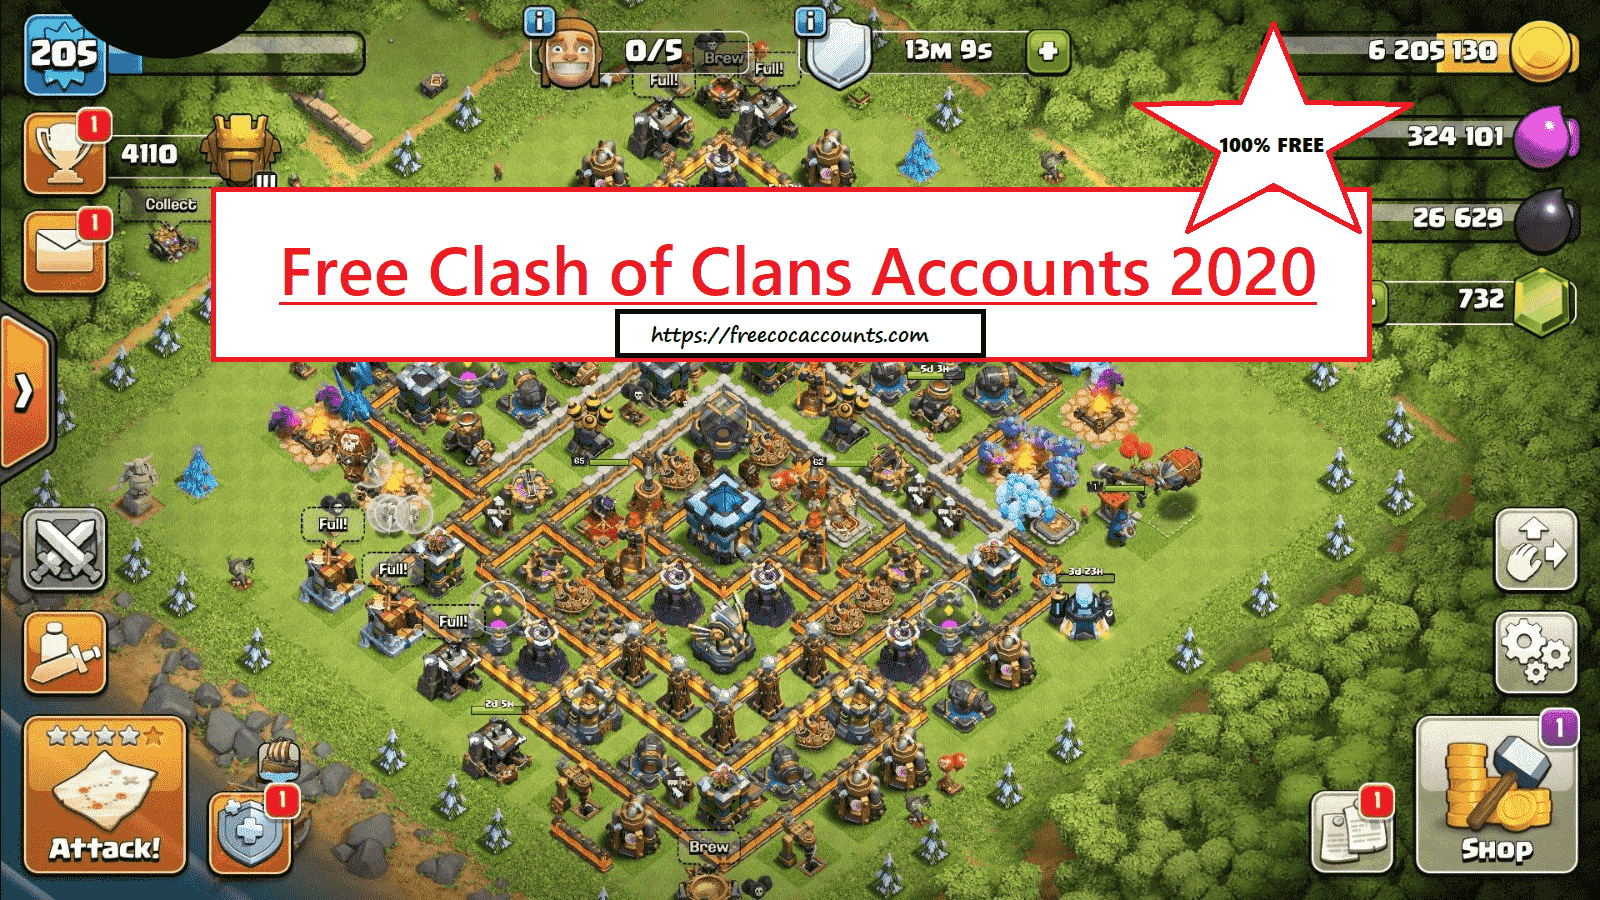 Free Clash Of Clans Accounts 2020 Free Coc Accounts 2020 Free Coc Acc Clash Of Clans Account Clash Of Clans Clash Of Clans Free